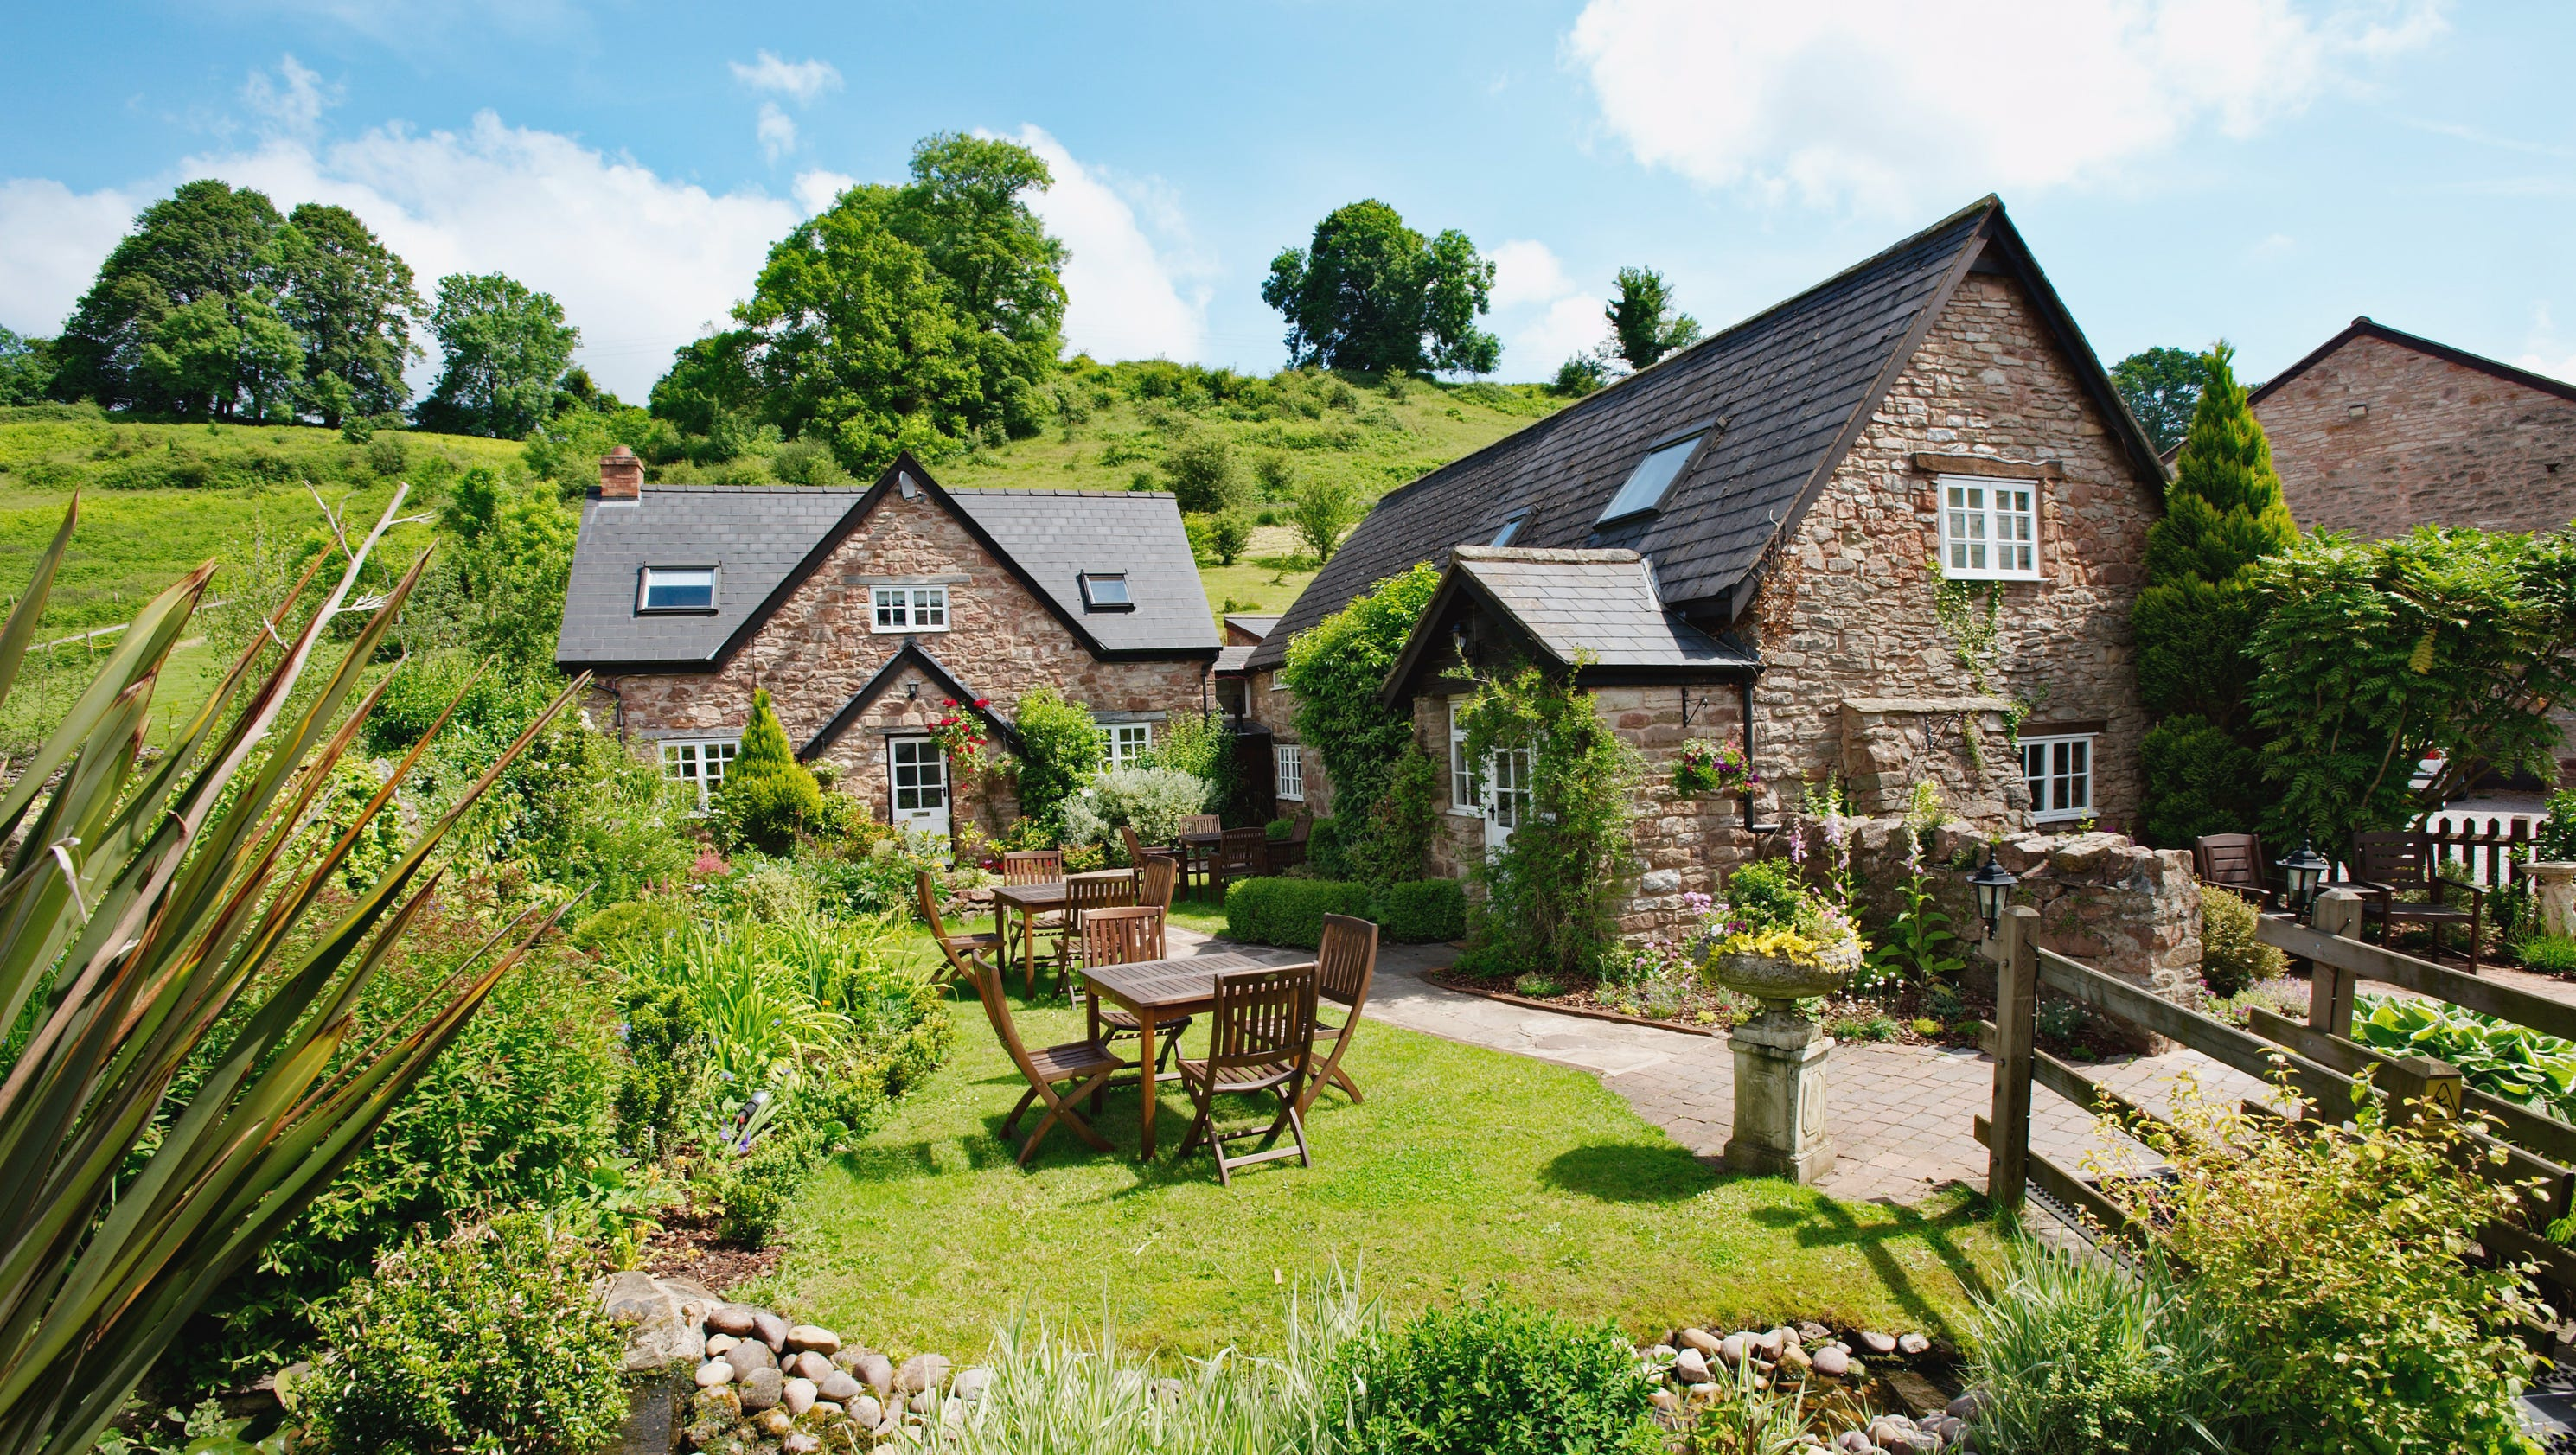 British hotels for hikers, amblers and ramblers